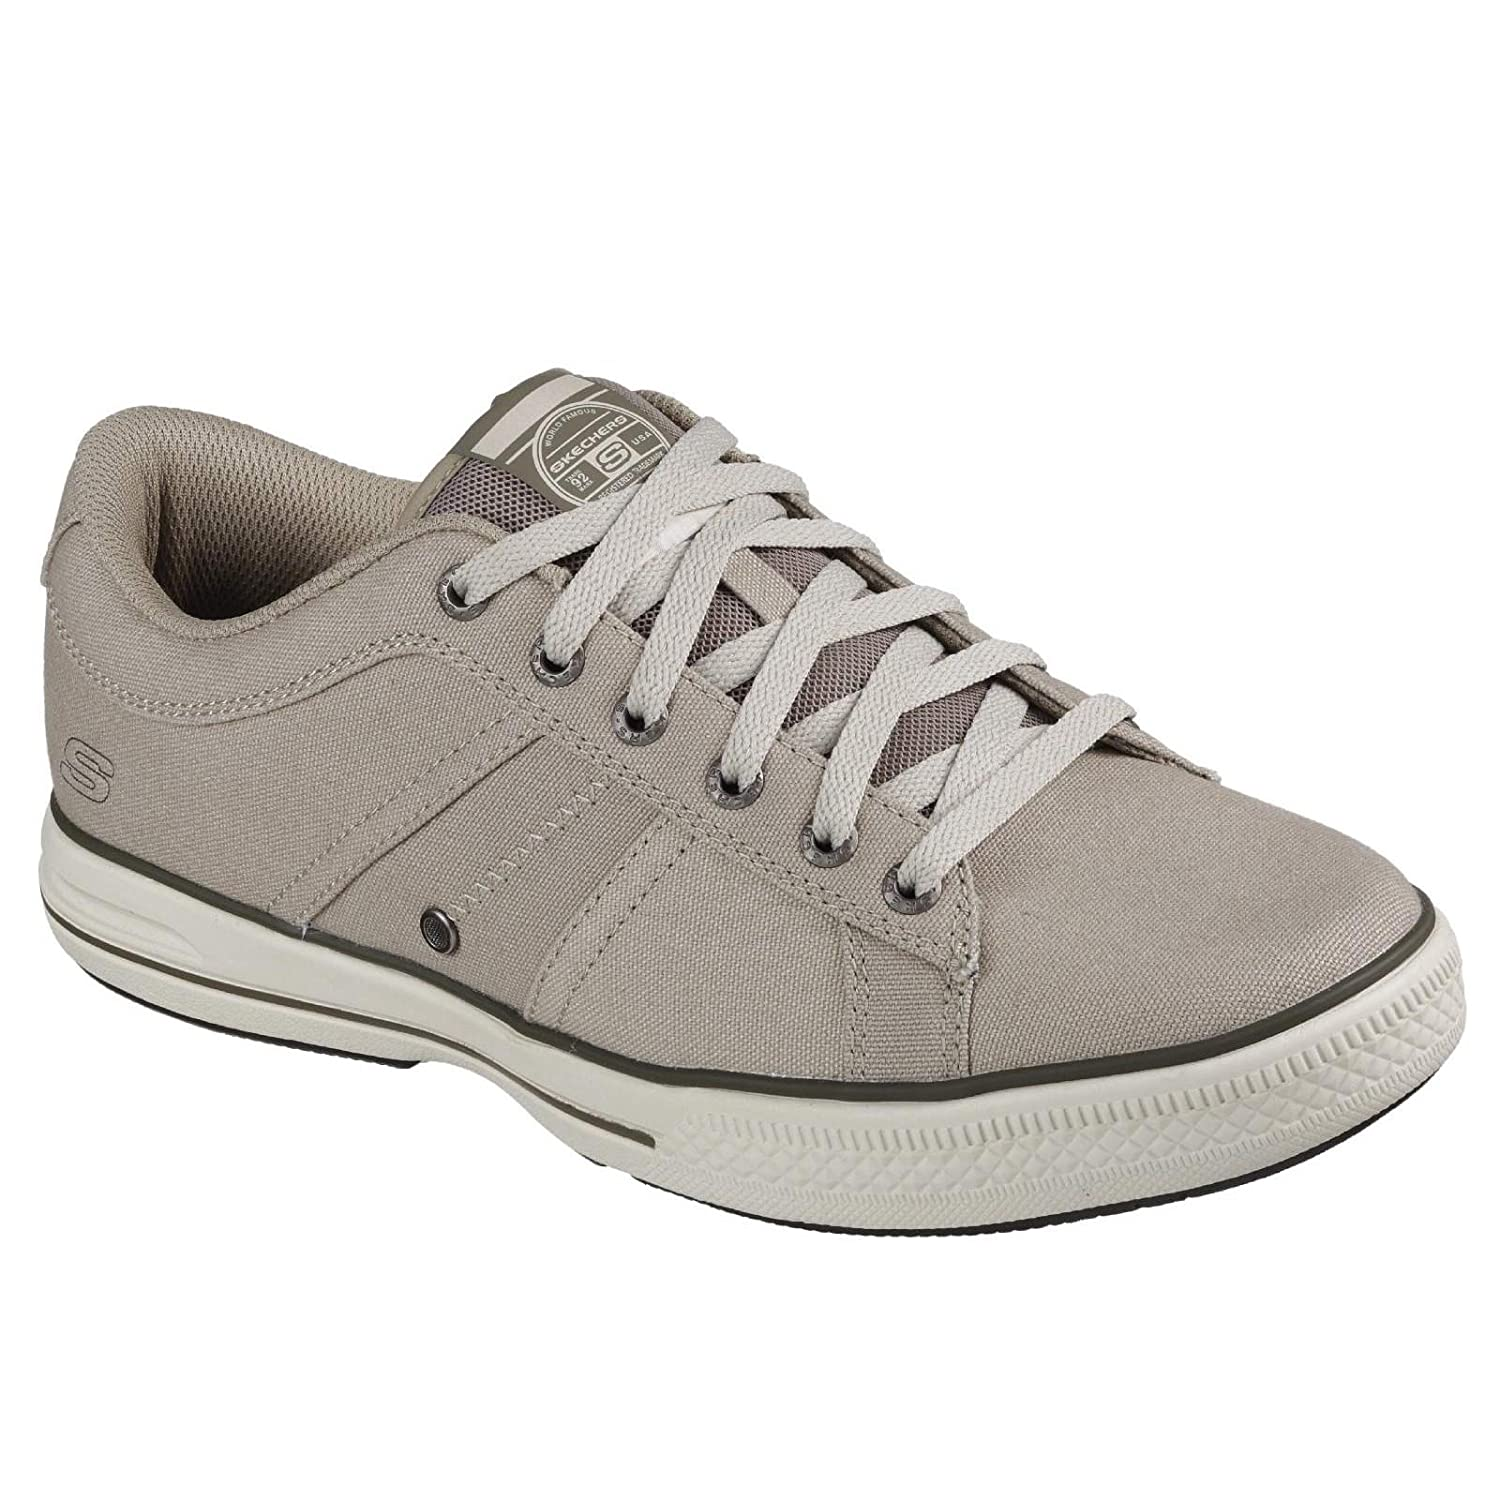 Skechers Mens Arcade Fulrow Lace Up Canvas Casual Pumps Taupe UK12